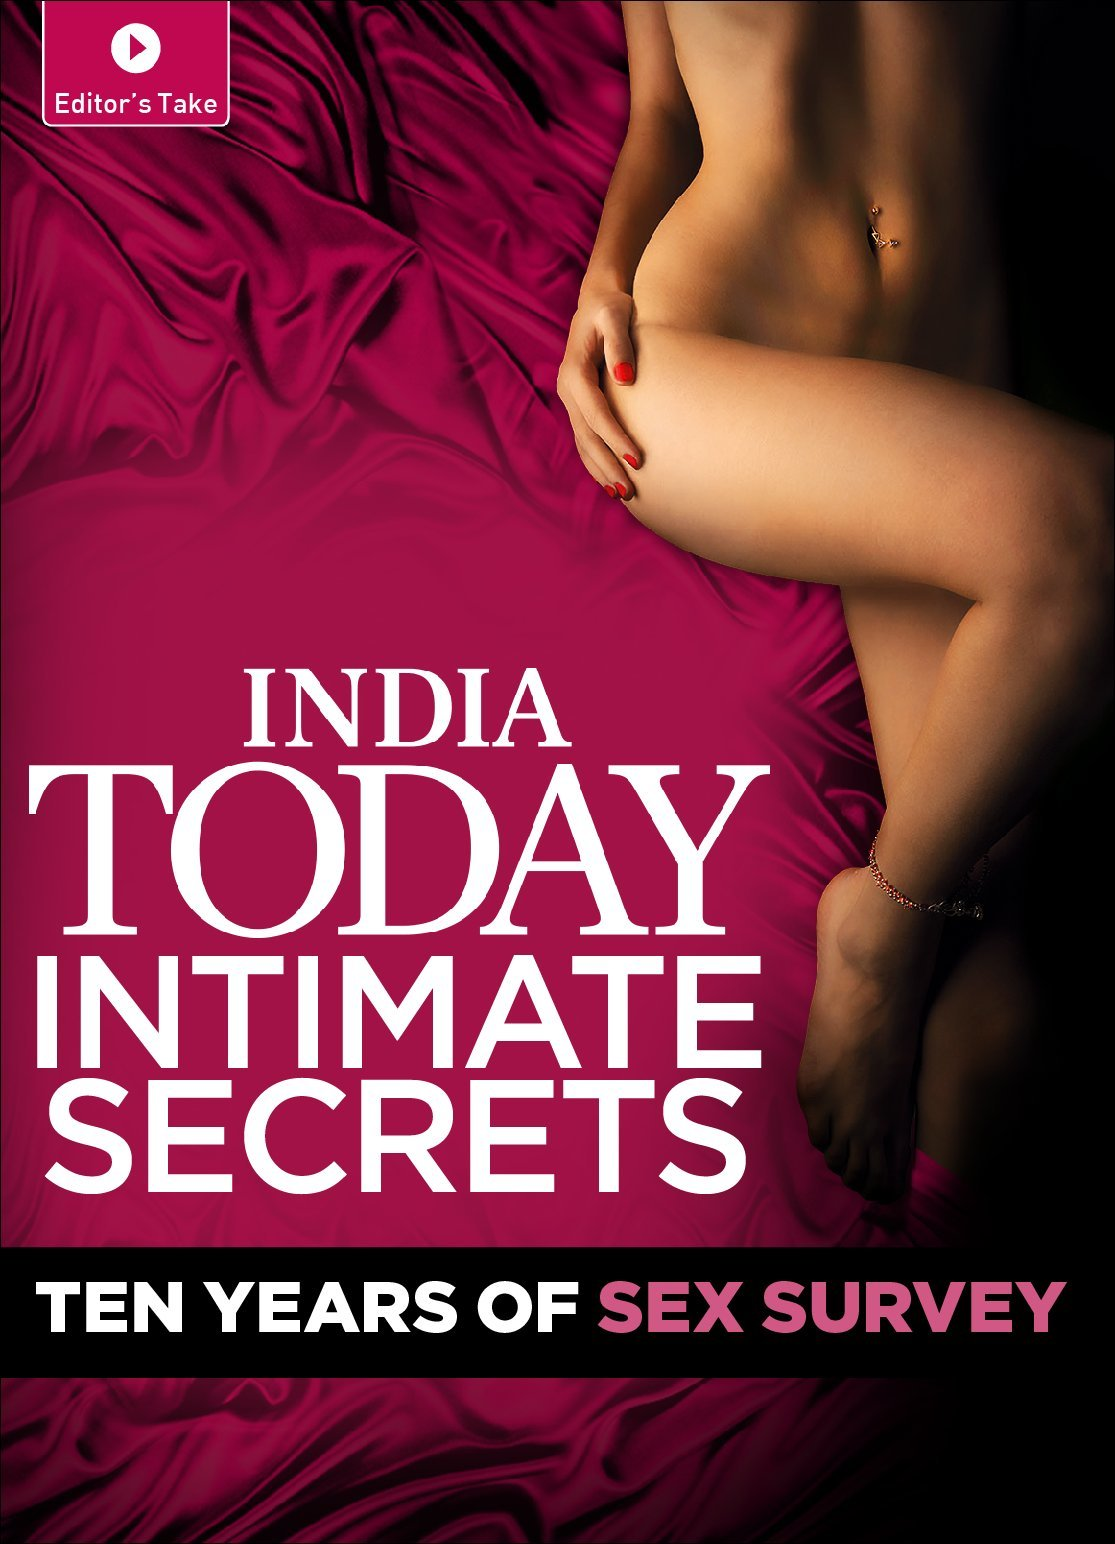 India Today 10 years of sex survey Digital